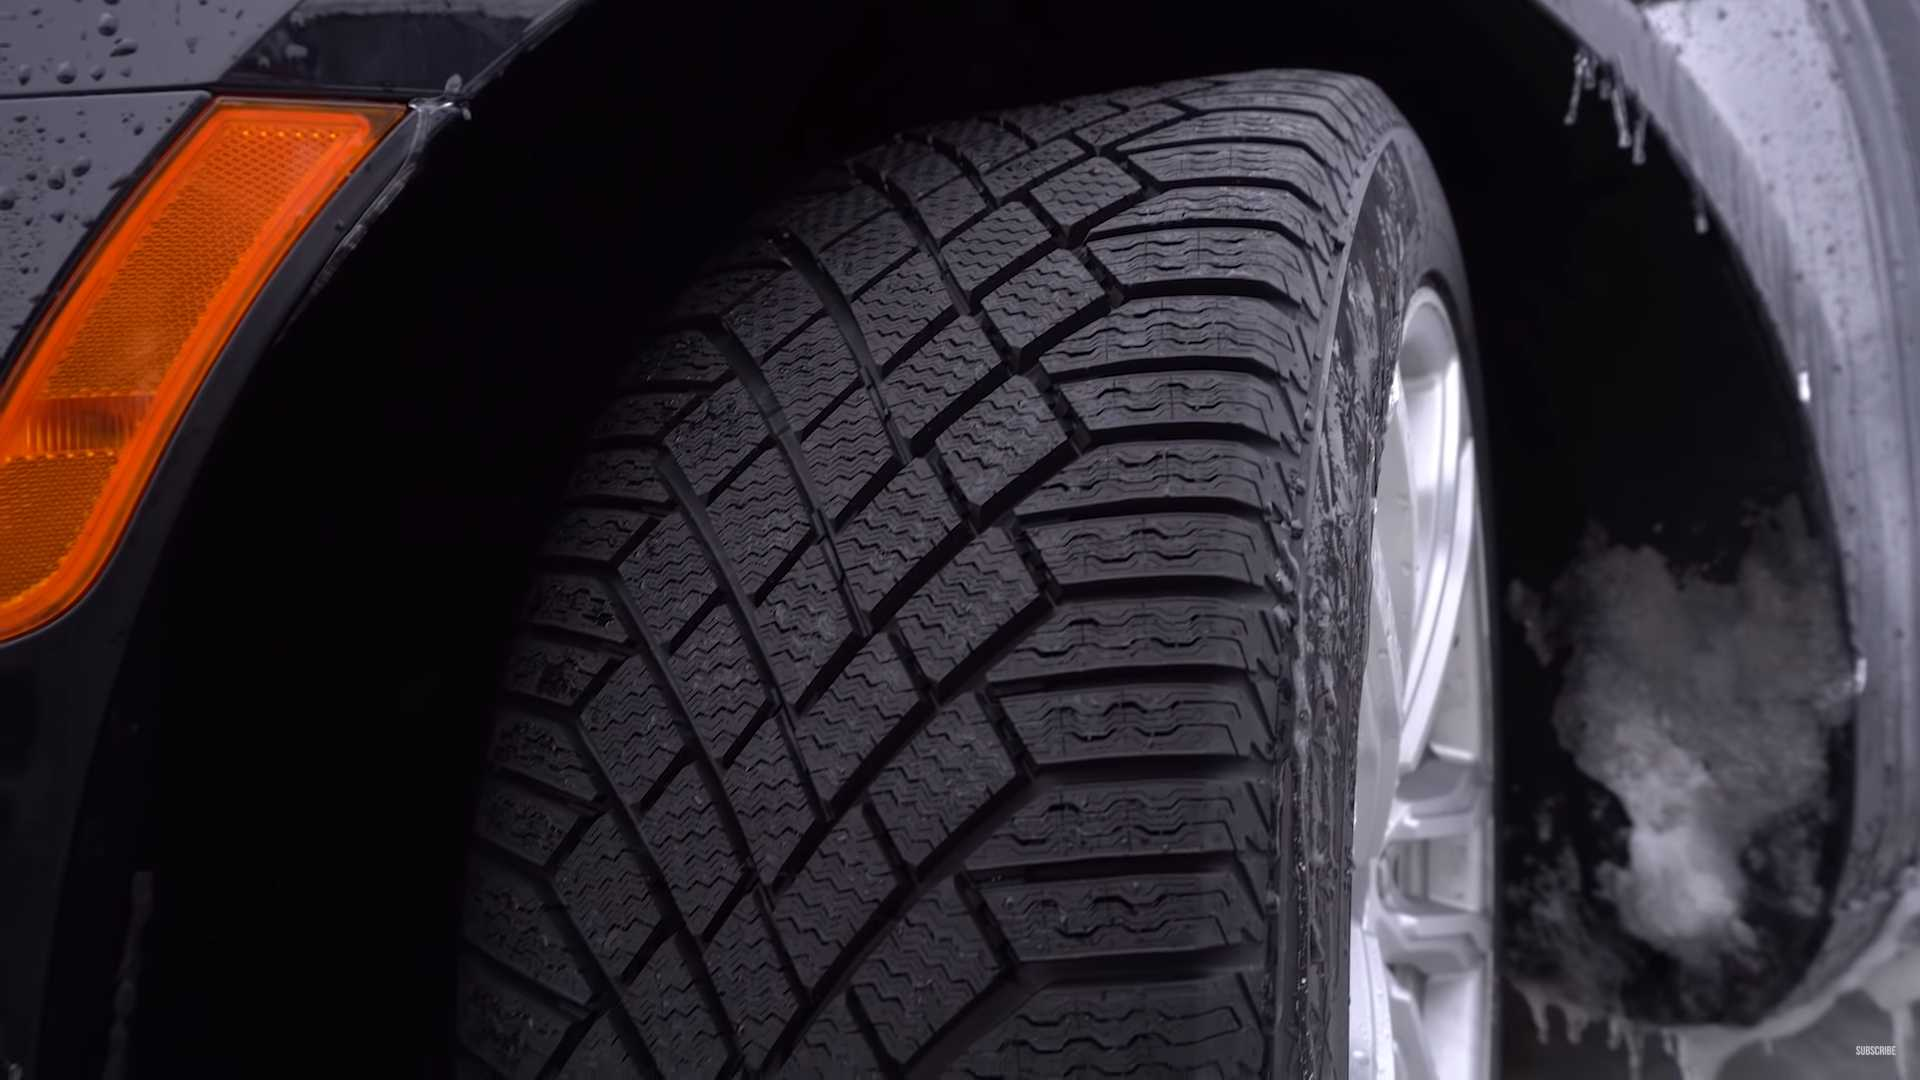 All Season Tires >> Video Proves Winter Tires Vastly Superior To All Seasons In Snow